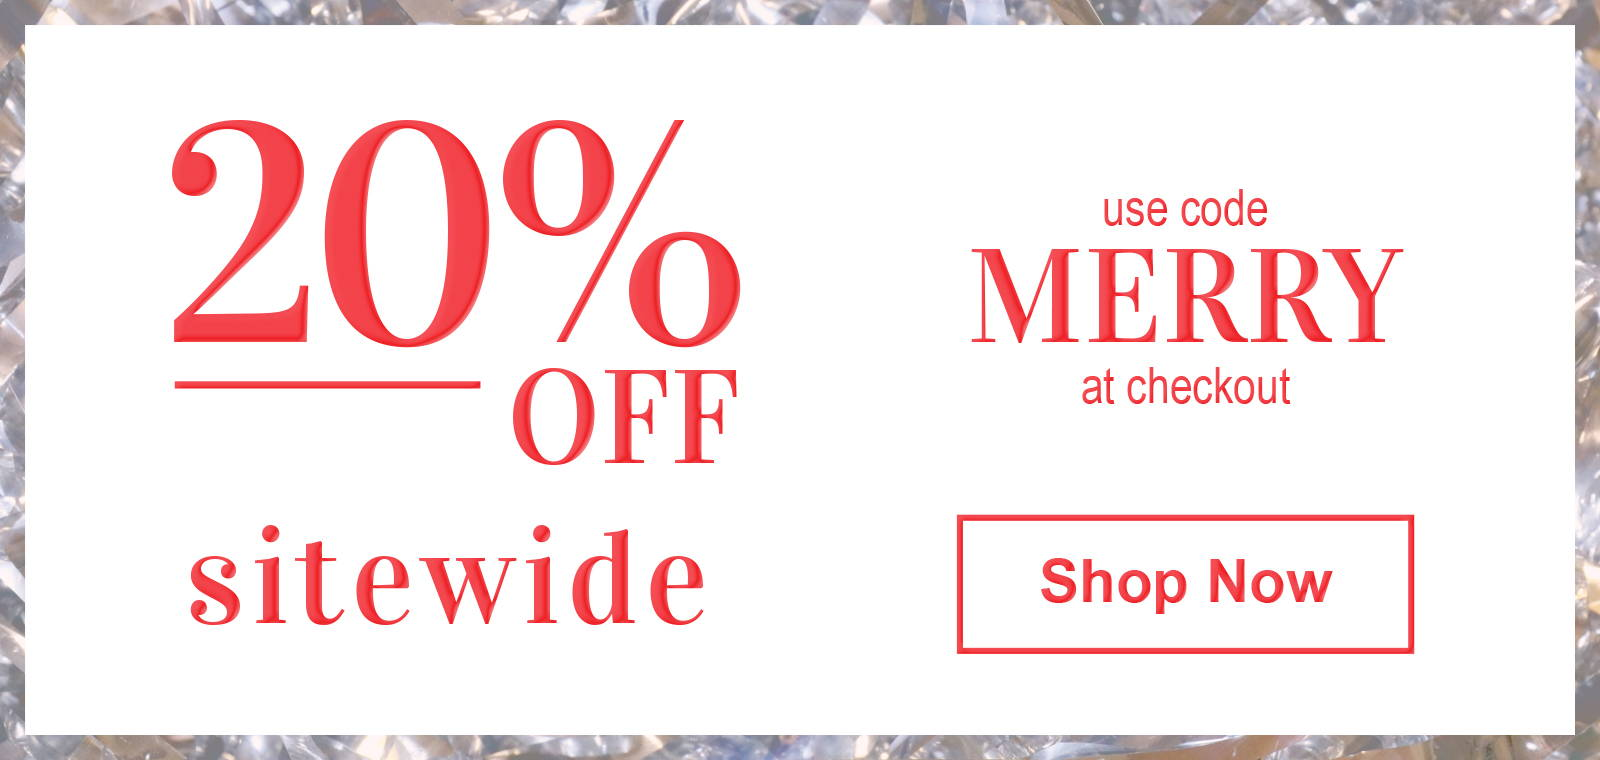 use code MERRY for 20% off almost everything